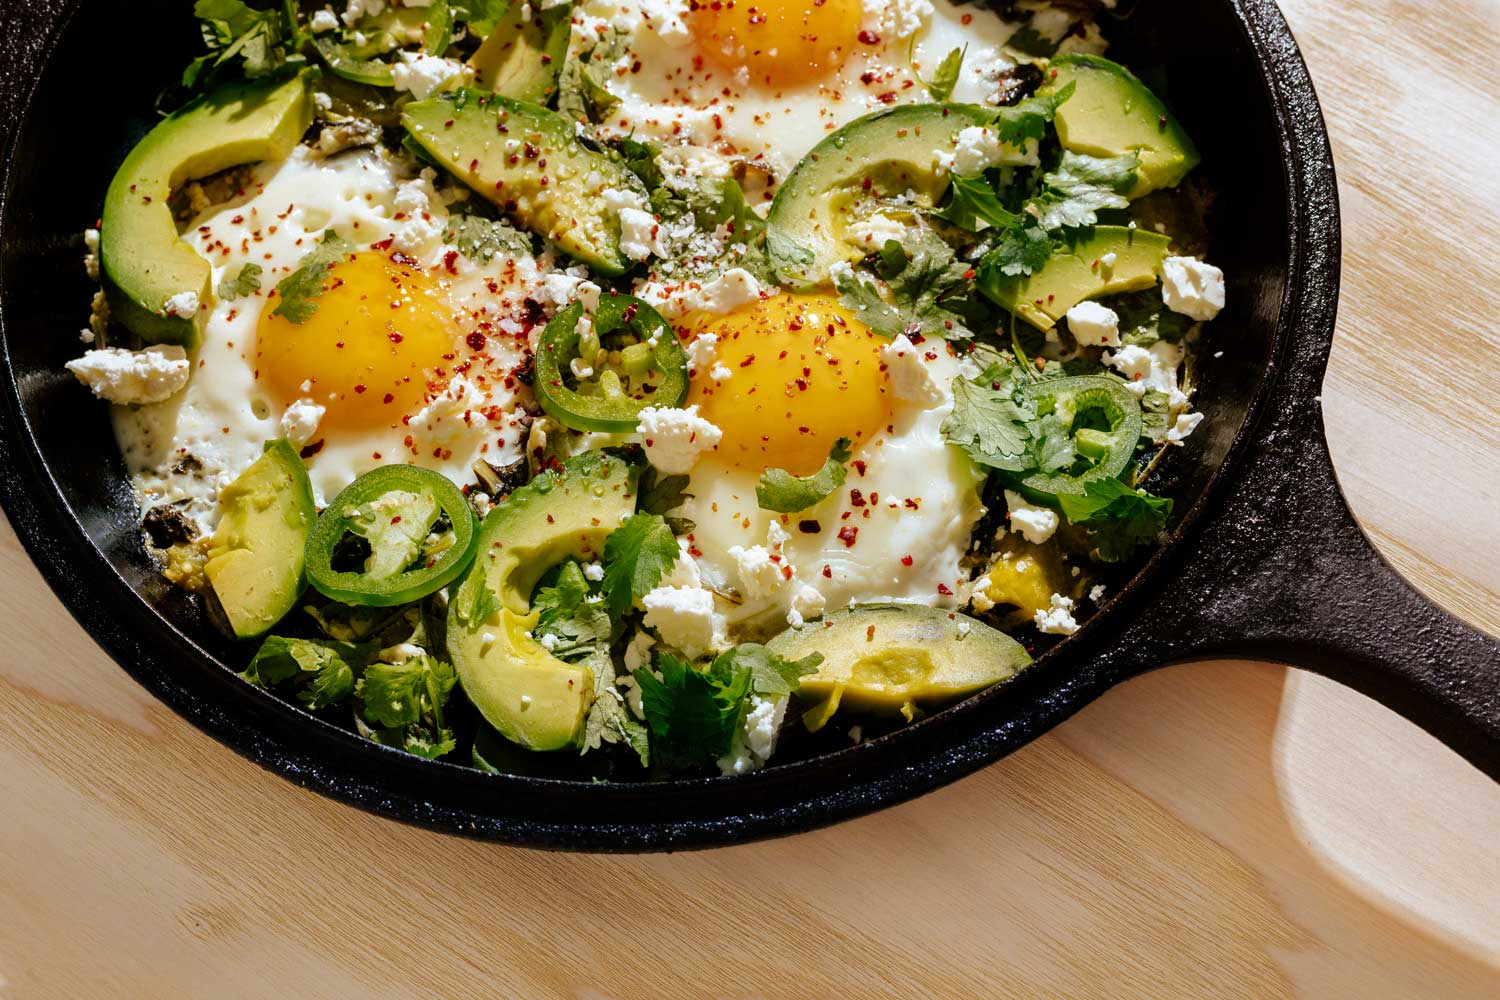 Egg, avocado, and jalapeno meal in a cast iron skillet.